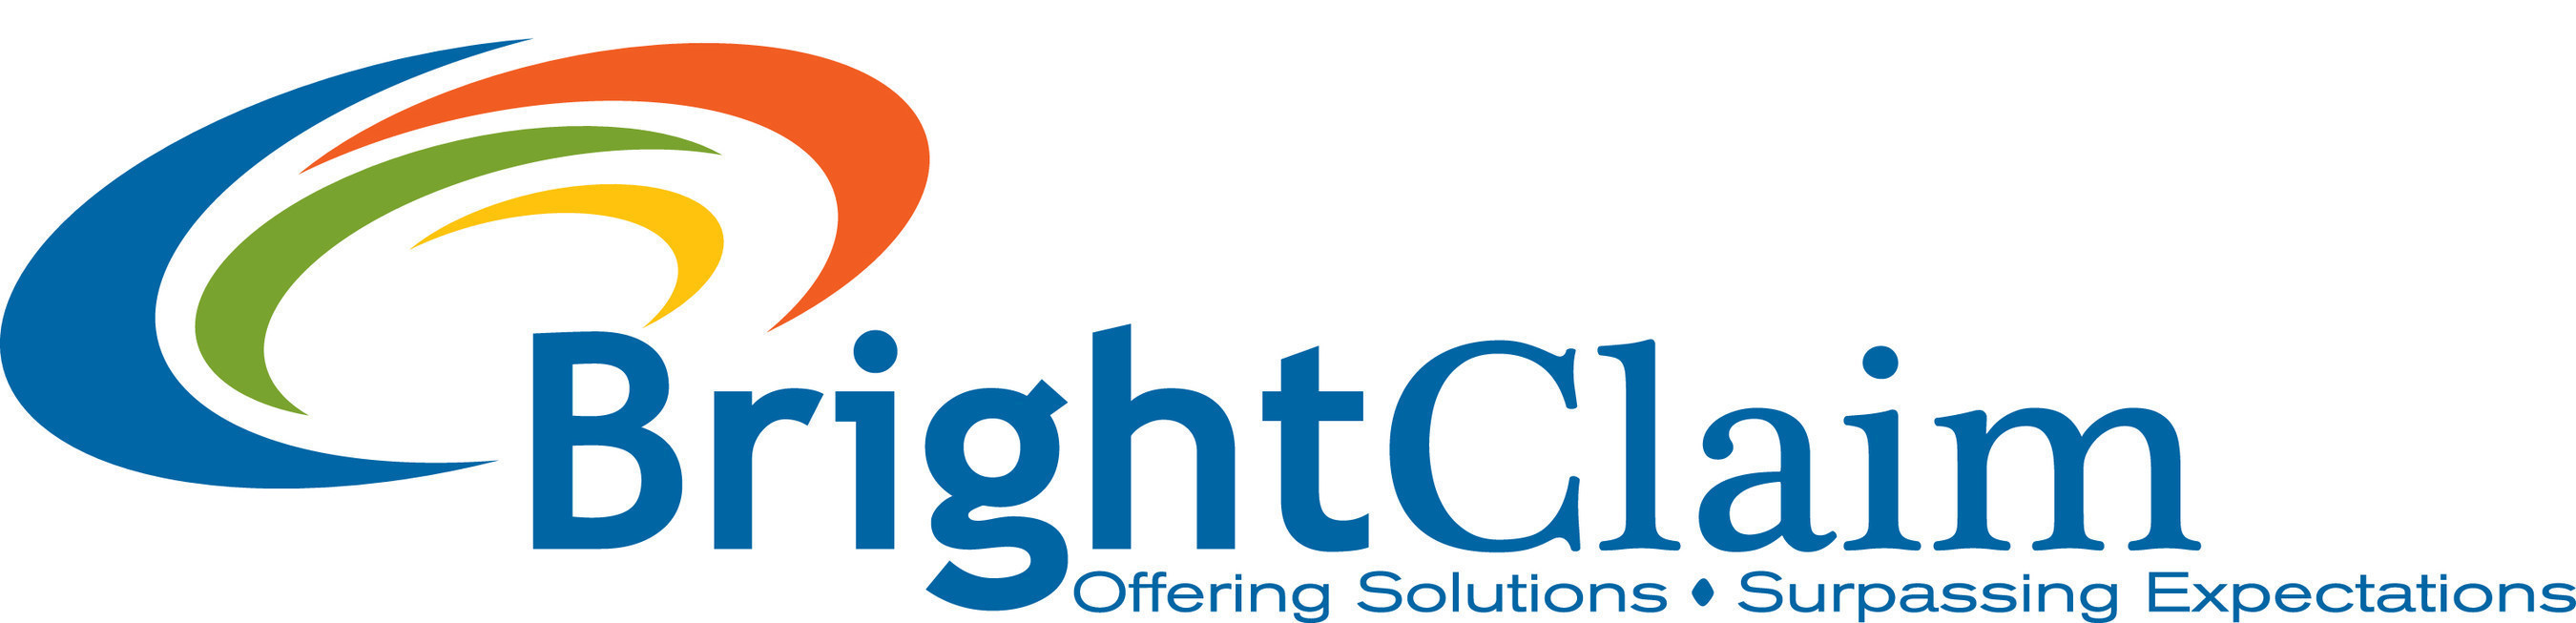 BrightClaim-Commissioned Survey Reveals How Insurers Use Third Party Property Claims Services